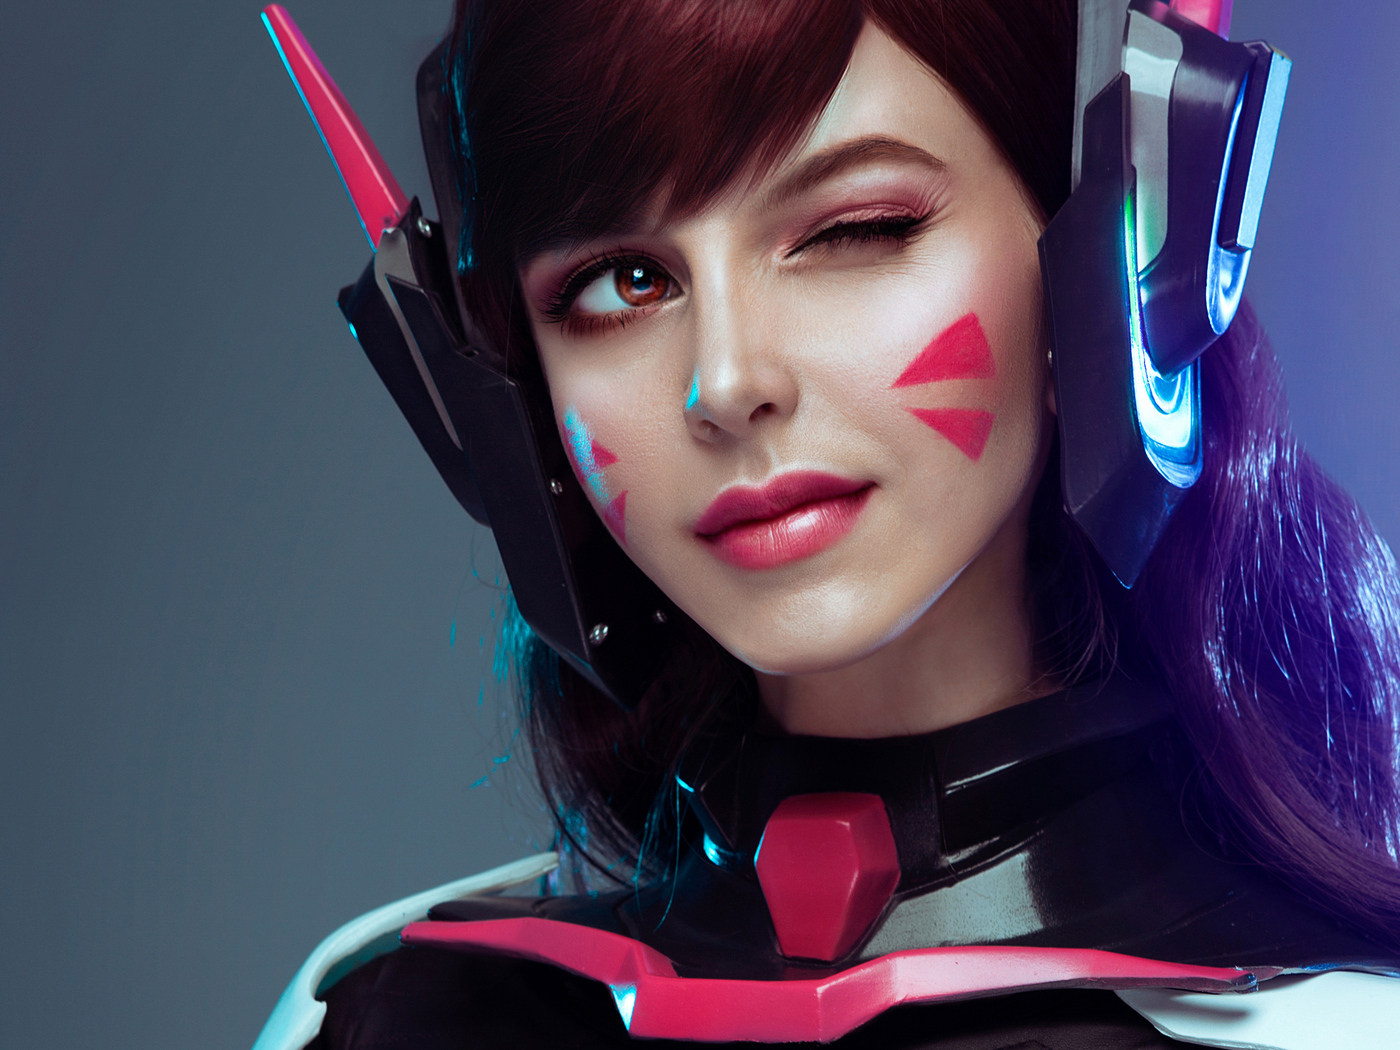 dva-from-overwatch-cosplay-ot.jpg